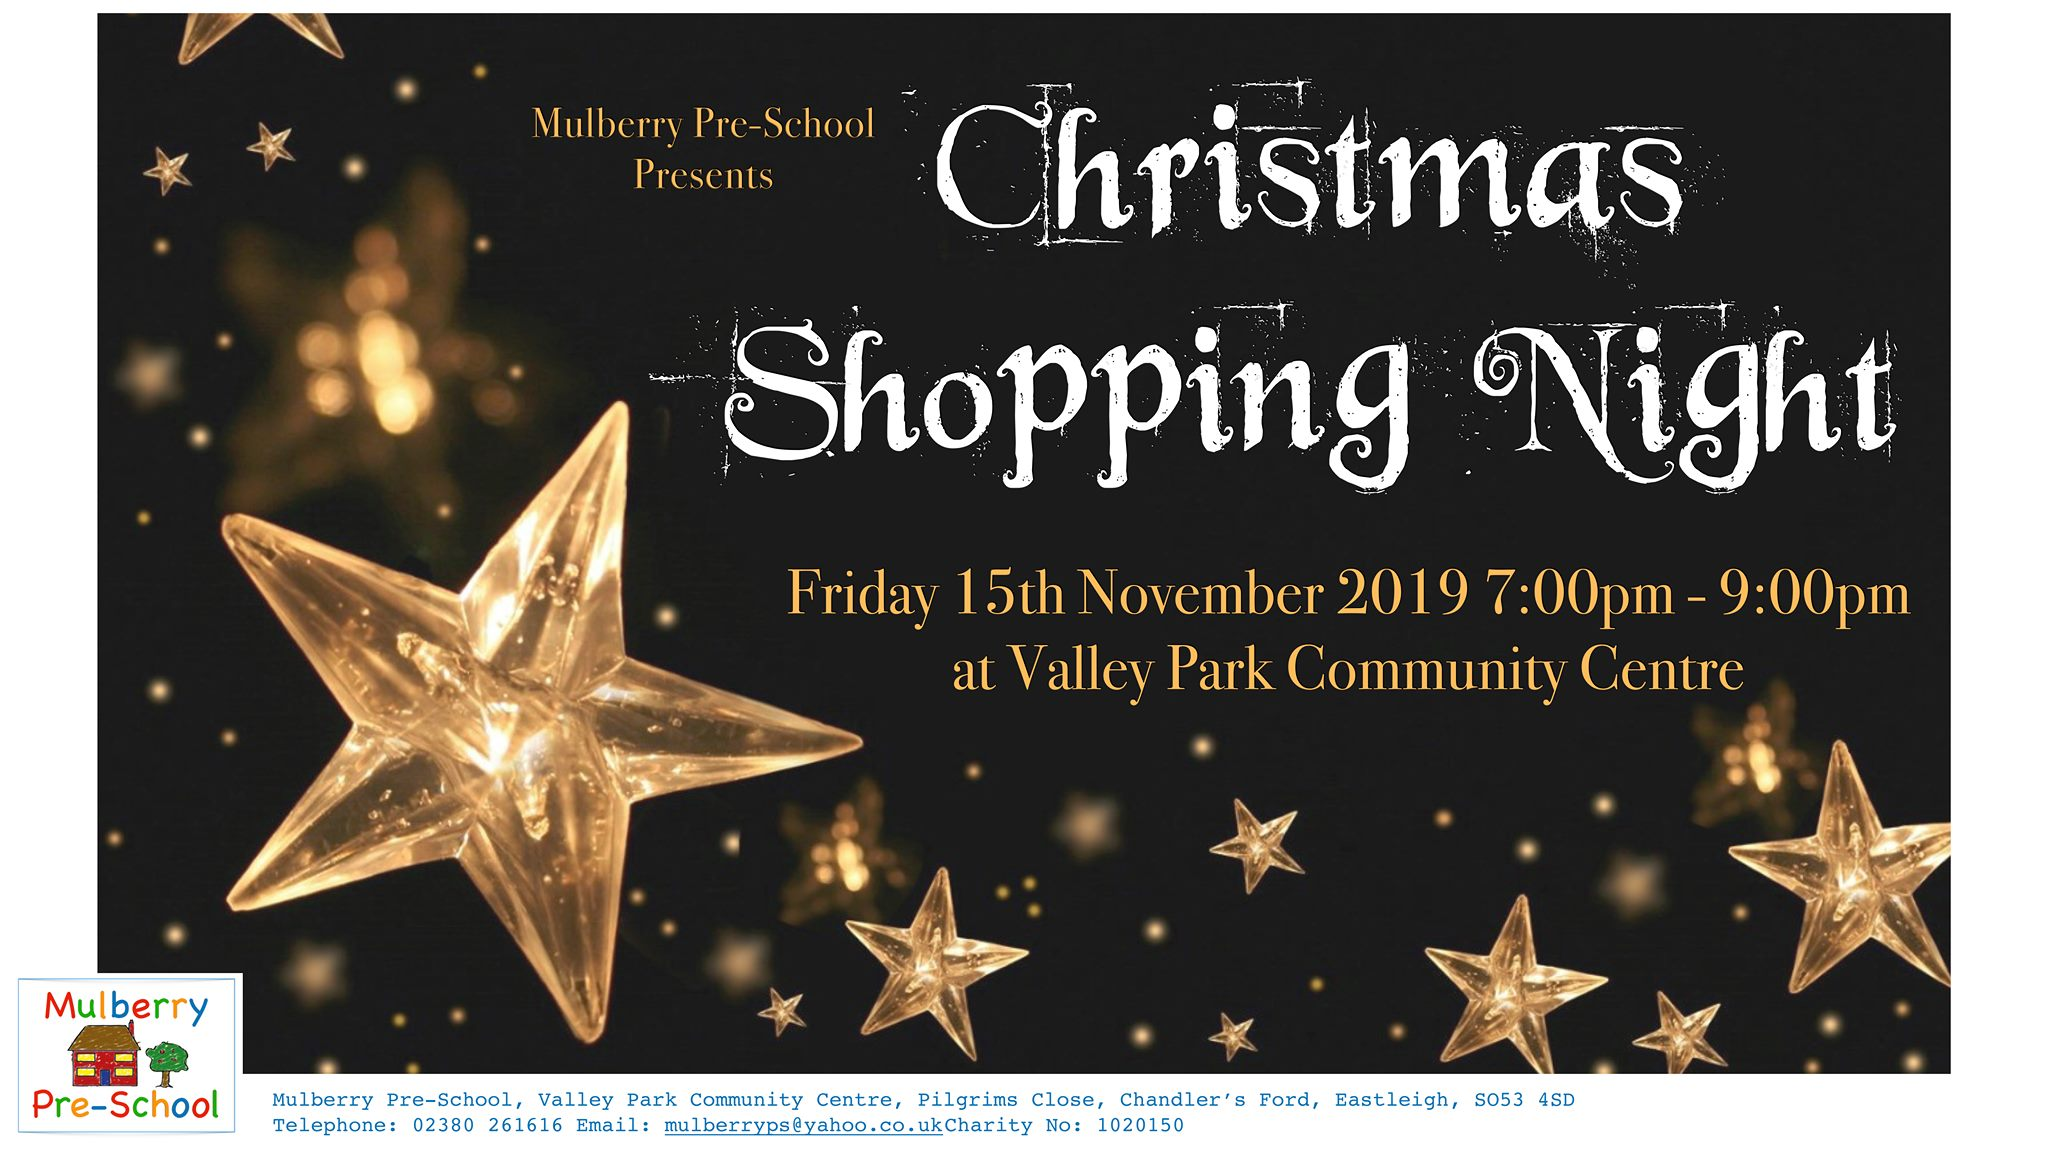 Mulberry Pre-school‎ Christmas Shopping Night - Friday, 15 November 2019 from 19:00 - 21:00 Valley Park Community Centre